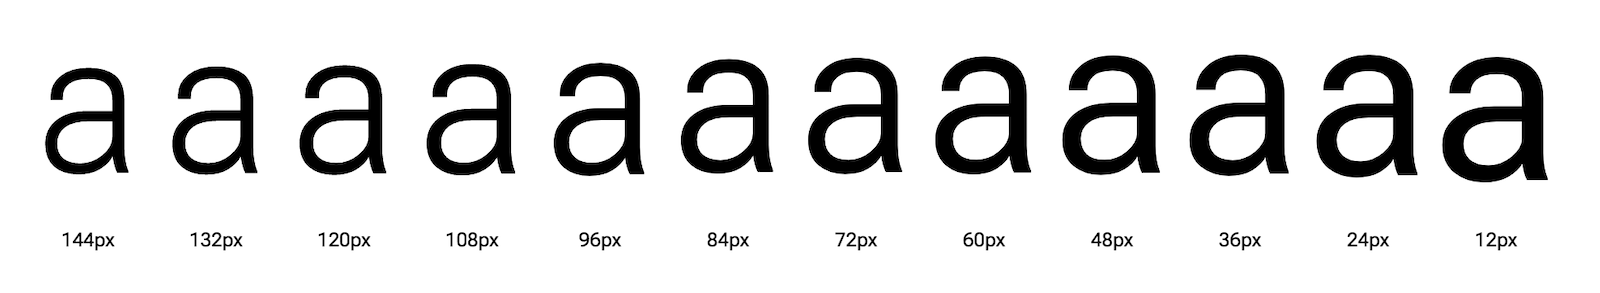 The letter 'a' shown at different optical sizes